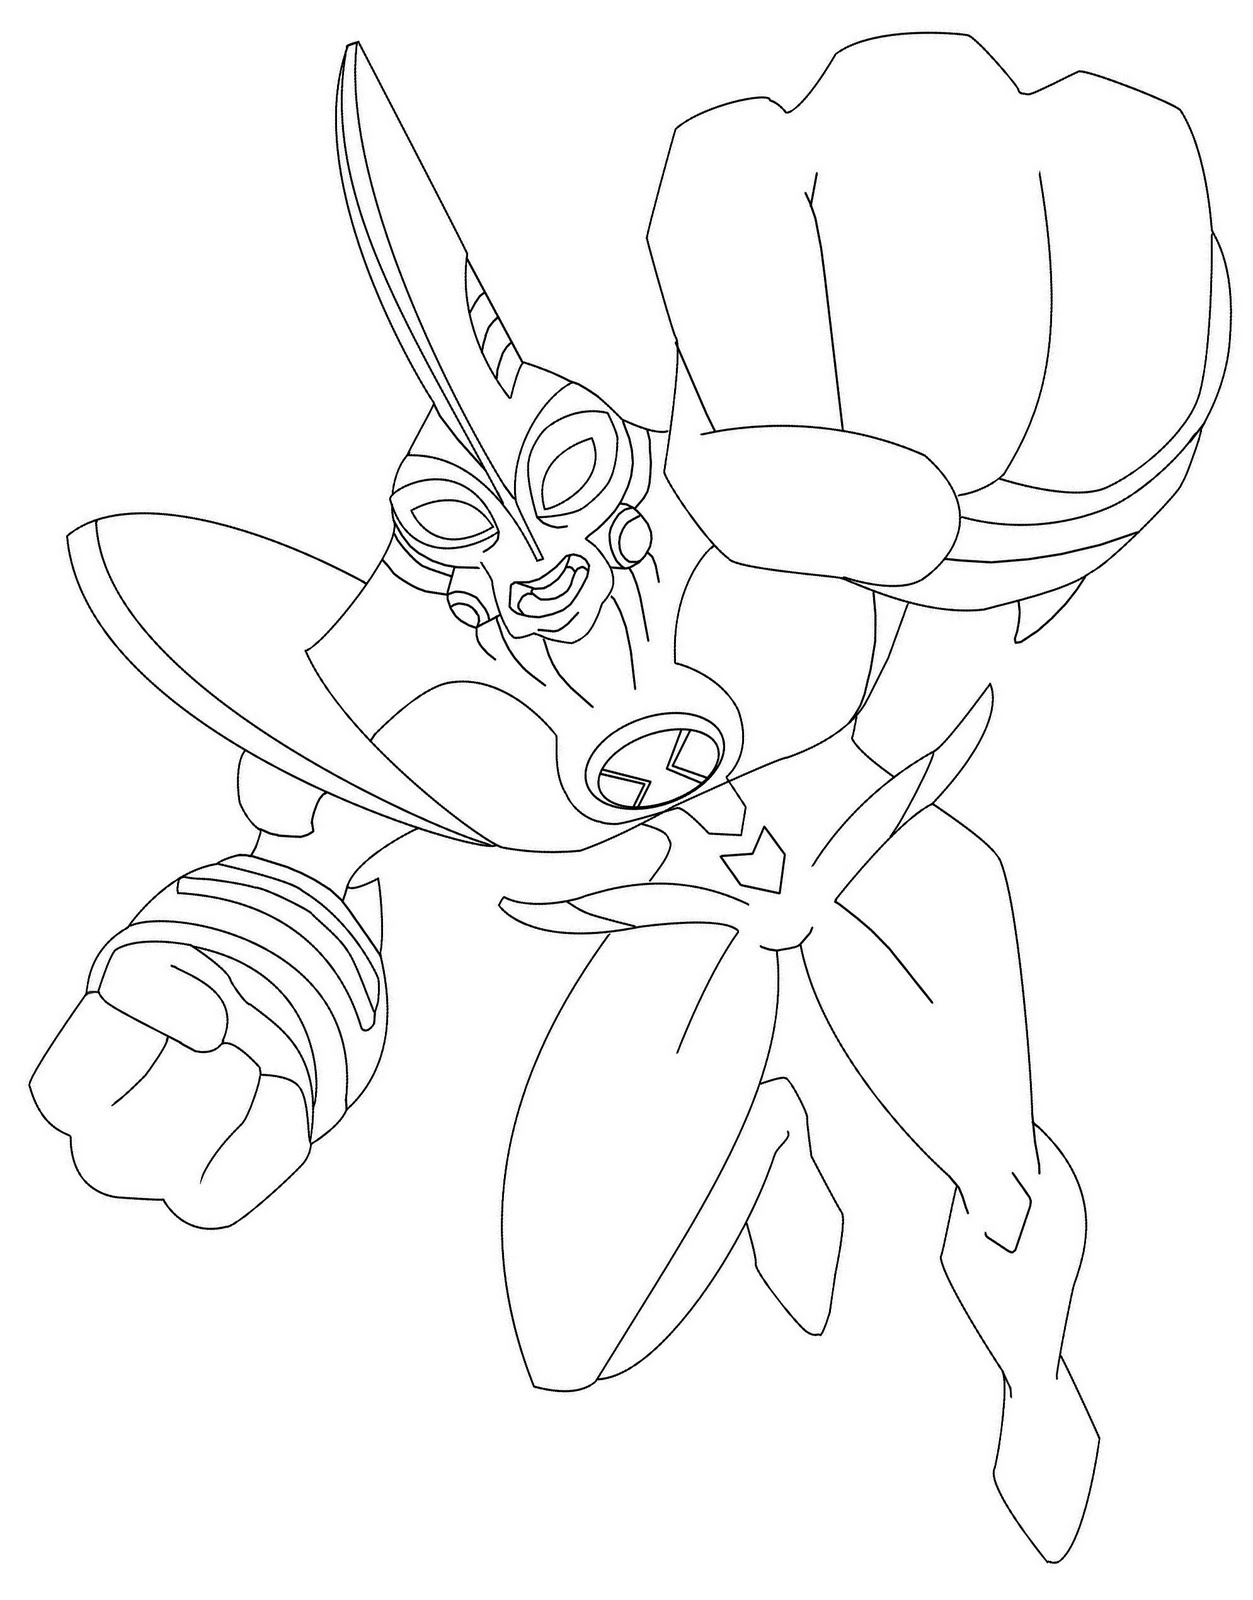 ben 10 lodestar coloring pages - photo#3